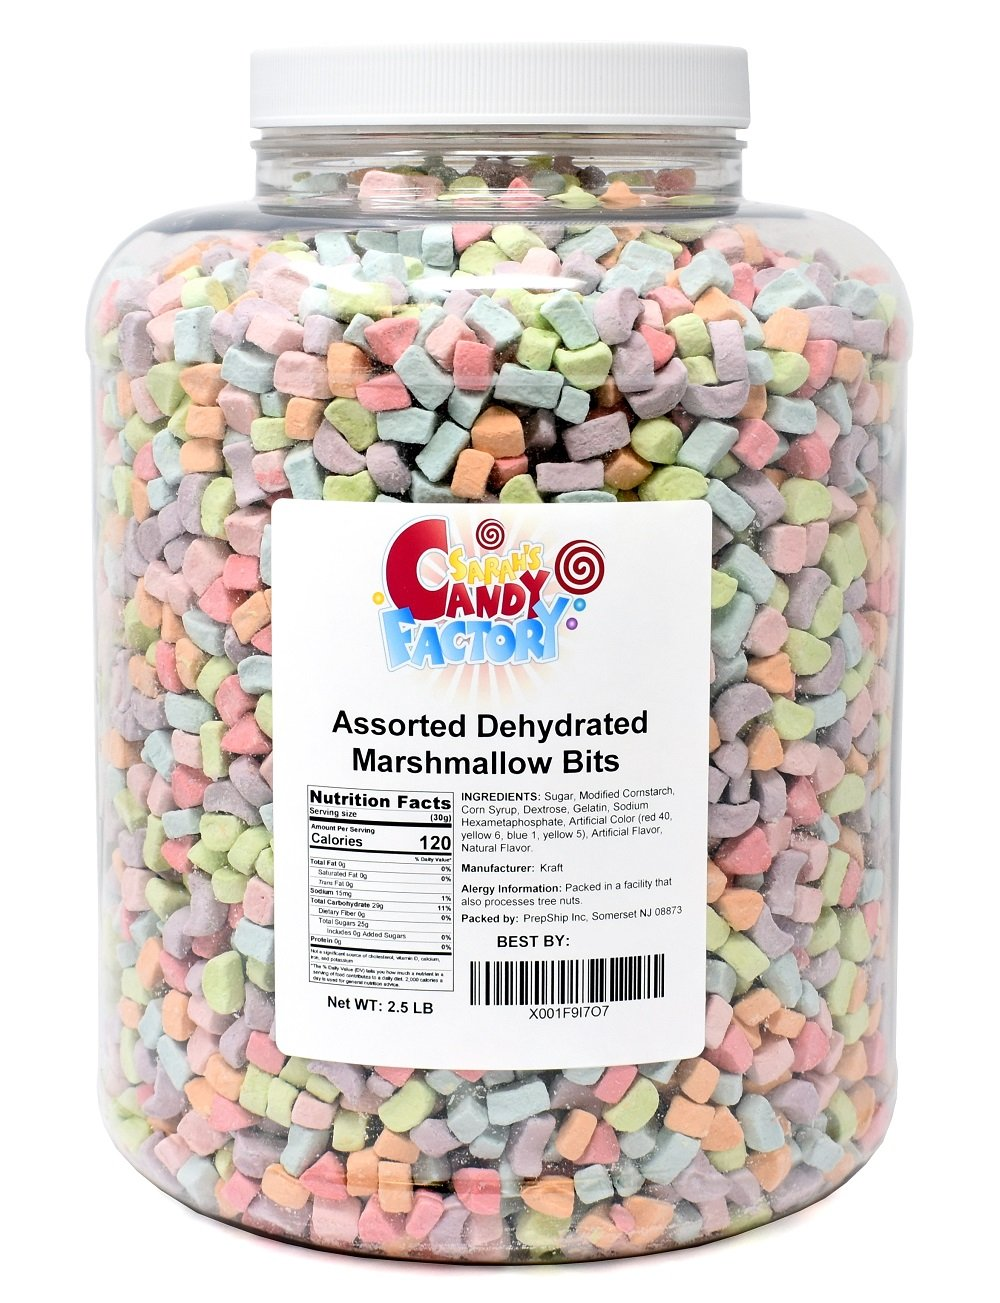 Sarah's Candy Factory Assorted Dehydrated Marshmallow Bits in Jar, 2.5lb